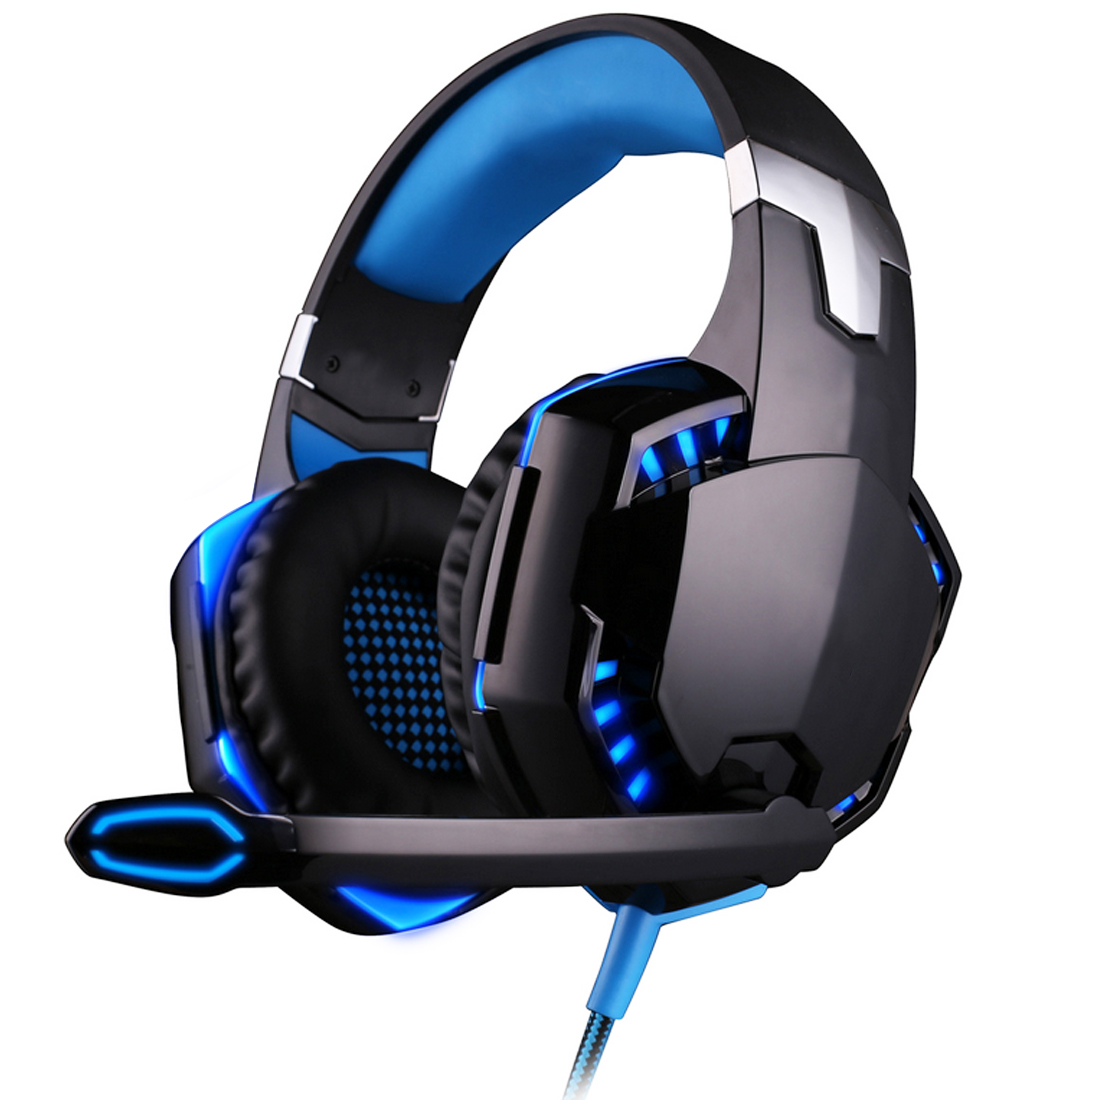 Marsnaska 100% Wire Gaming Headphone Gaming Headset Over Ear casque gamer Game Headphone With Microphone Mic LED light for PC philips shg7210 professional game headphones with microphone wire control headphone for xiaomi mp3 official verification